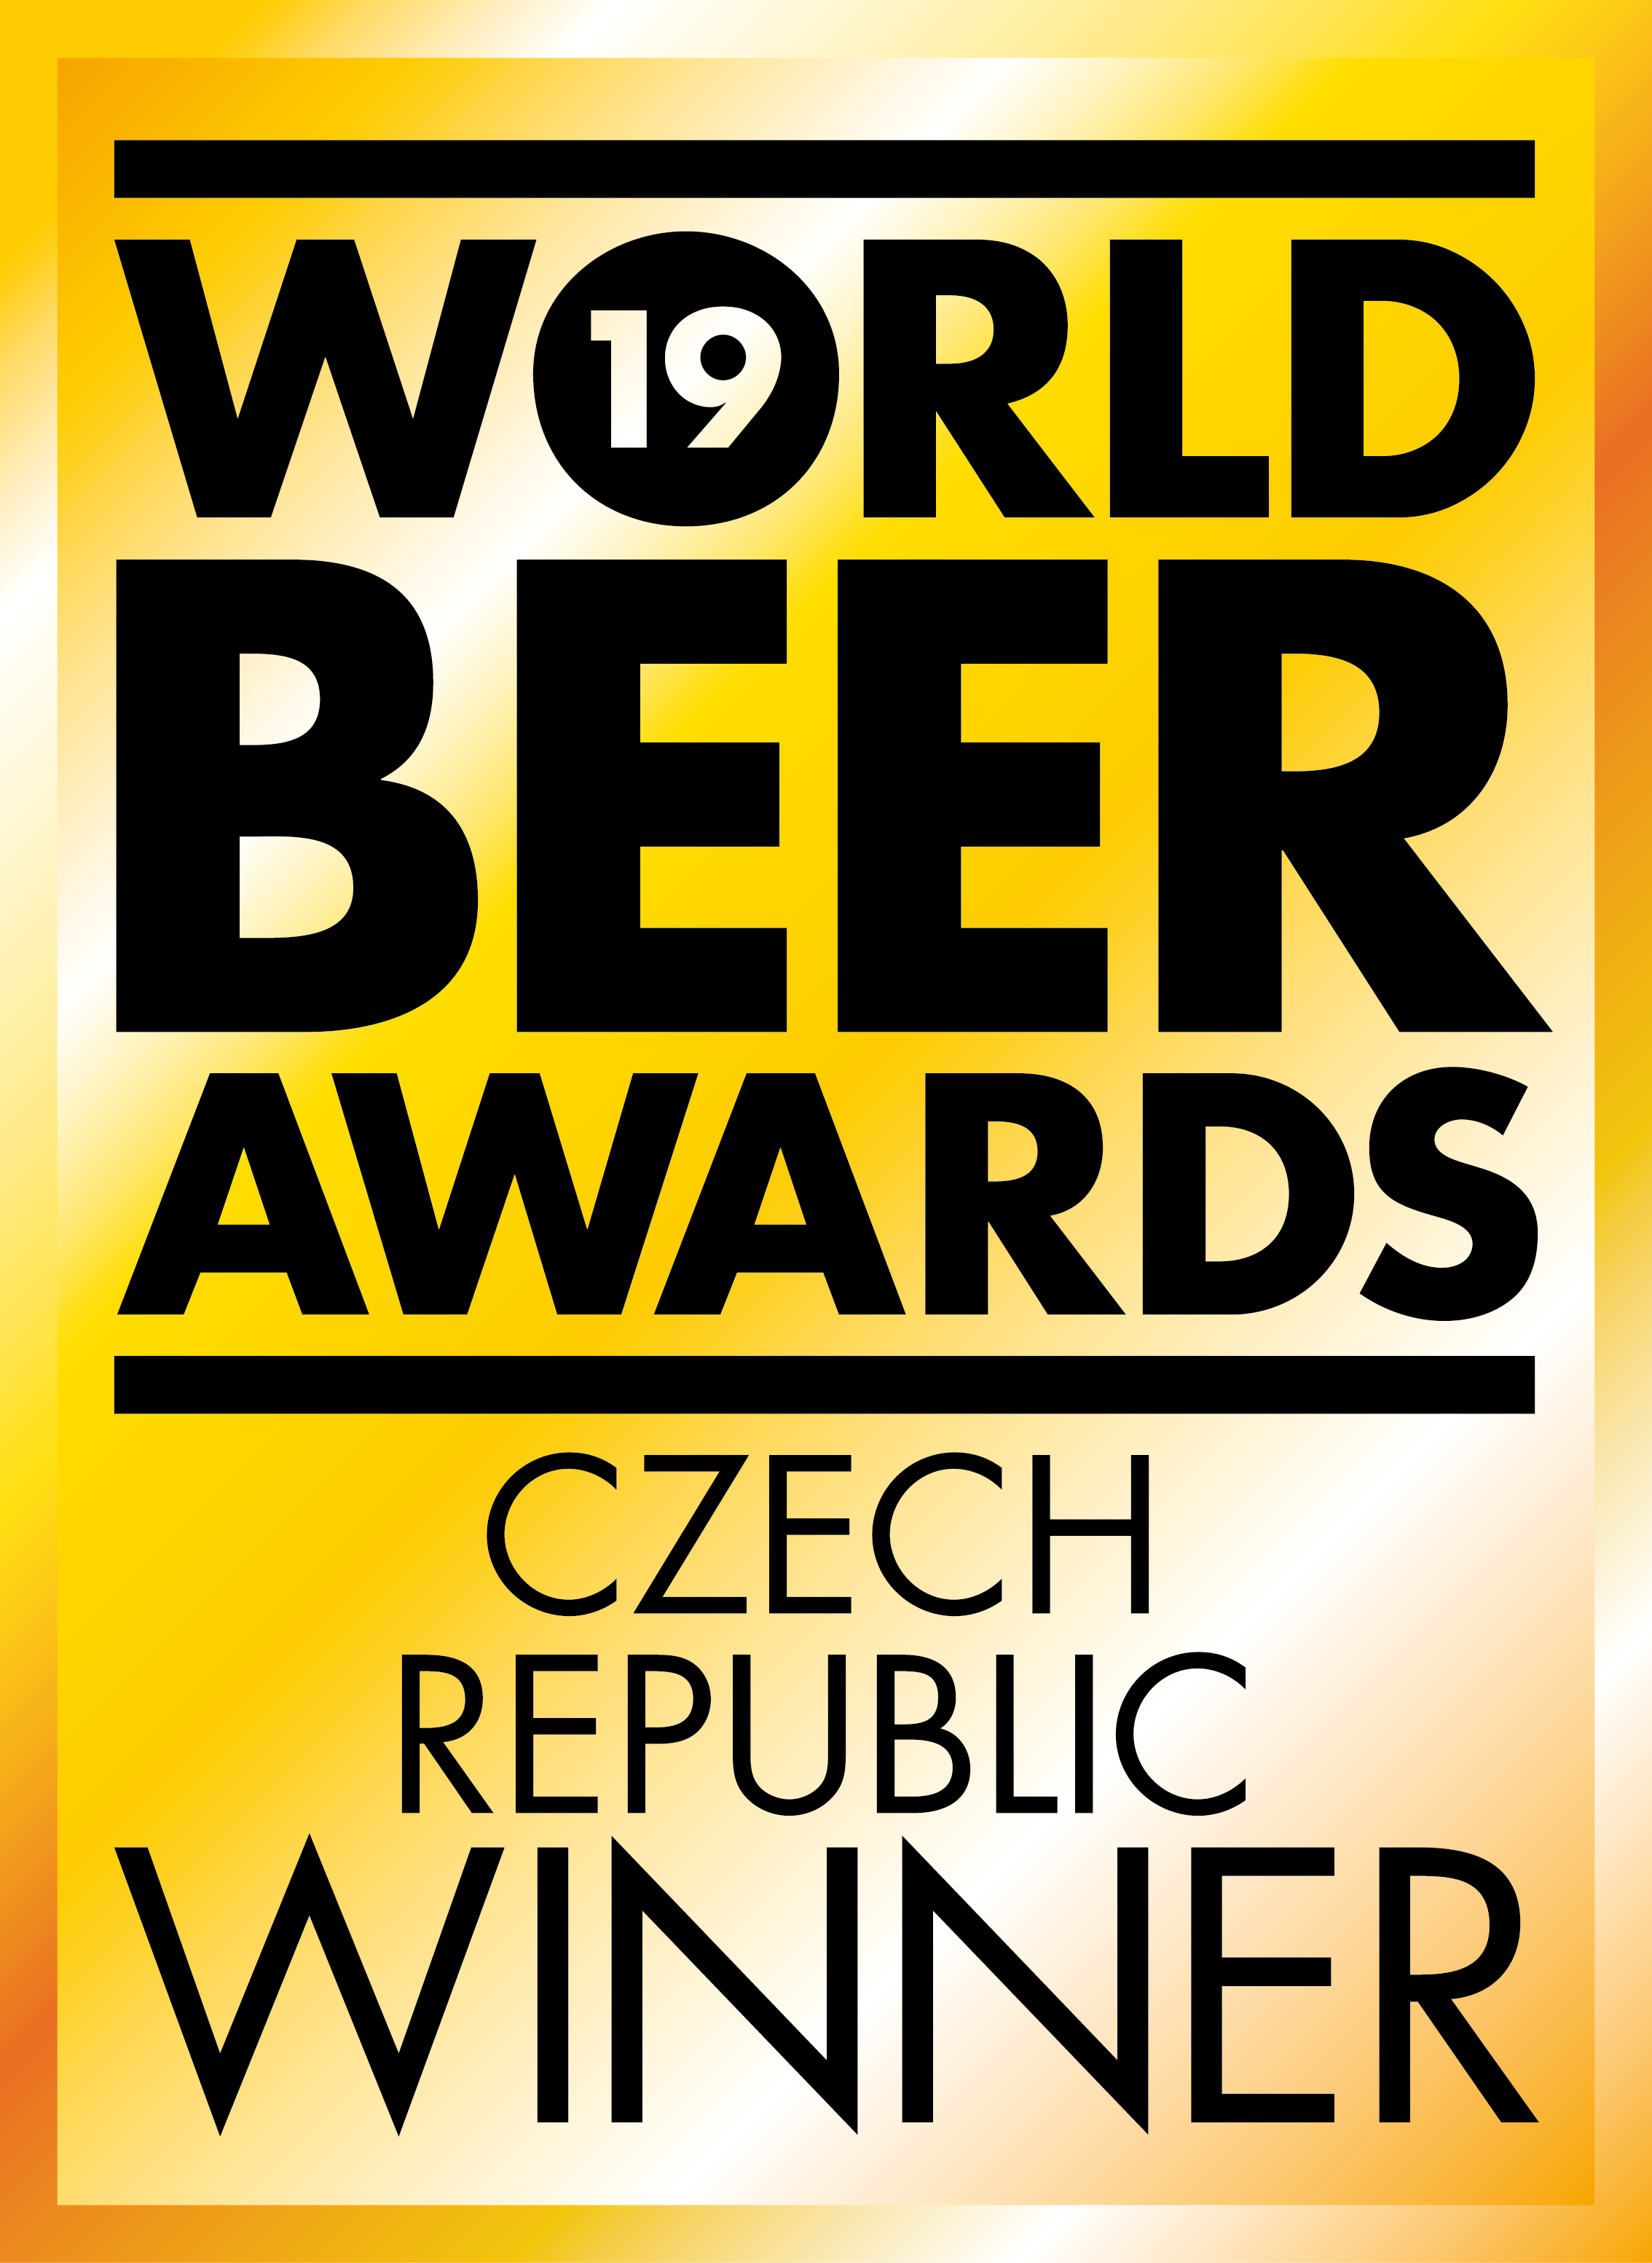 1.%20m%C3%ADsto%20The%20World%20Beer%20Awards%202019%20Lond%C3%BDn%20Lager%20Czech-style%20Pale